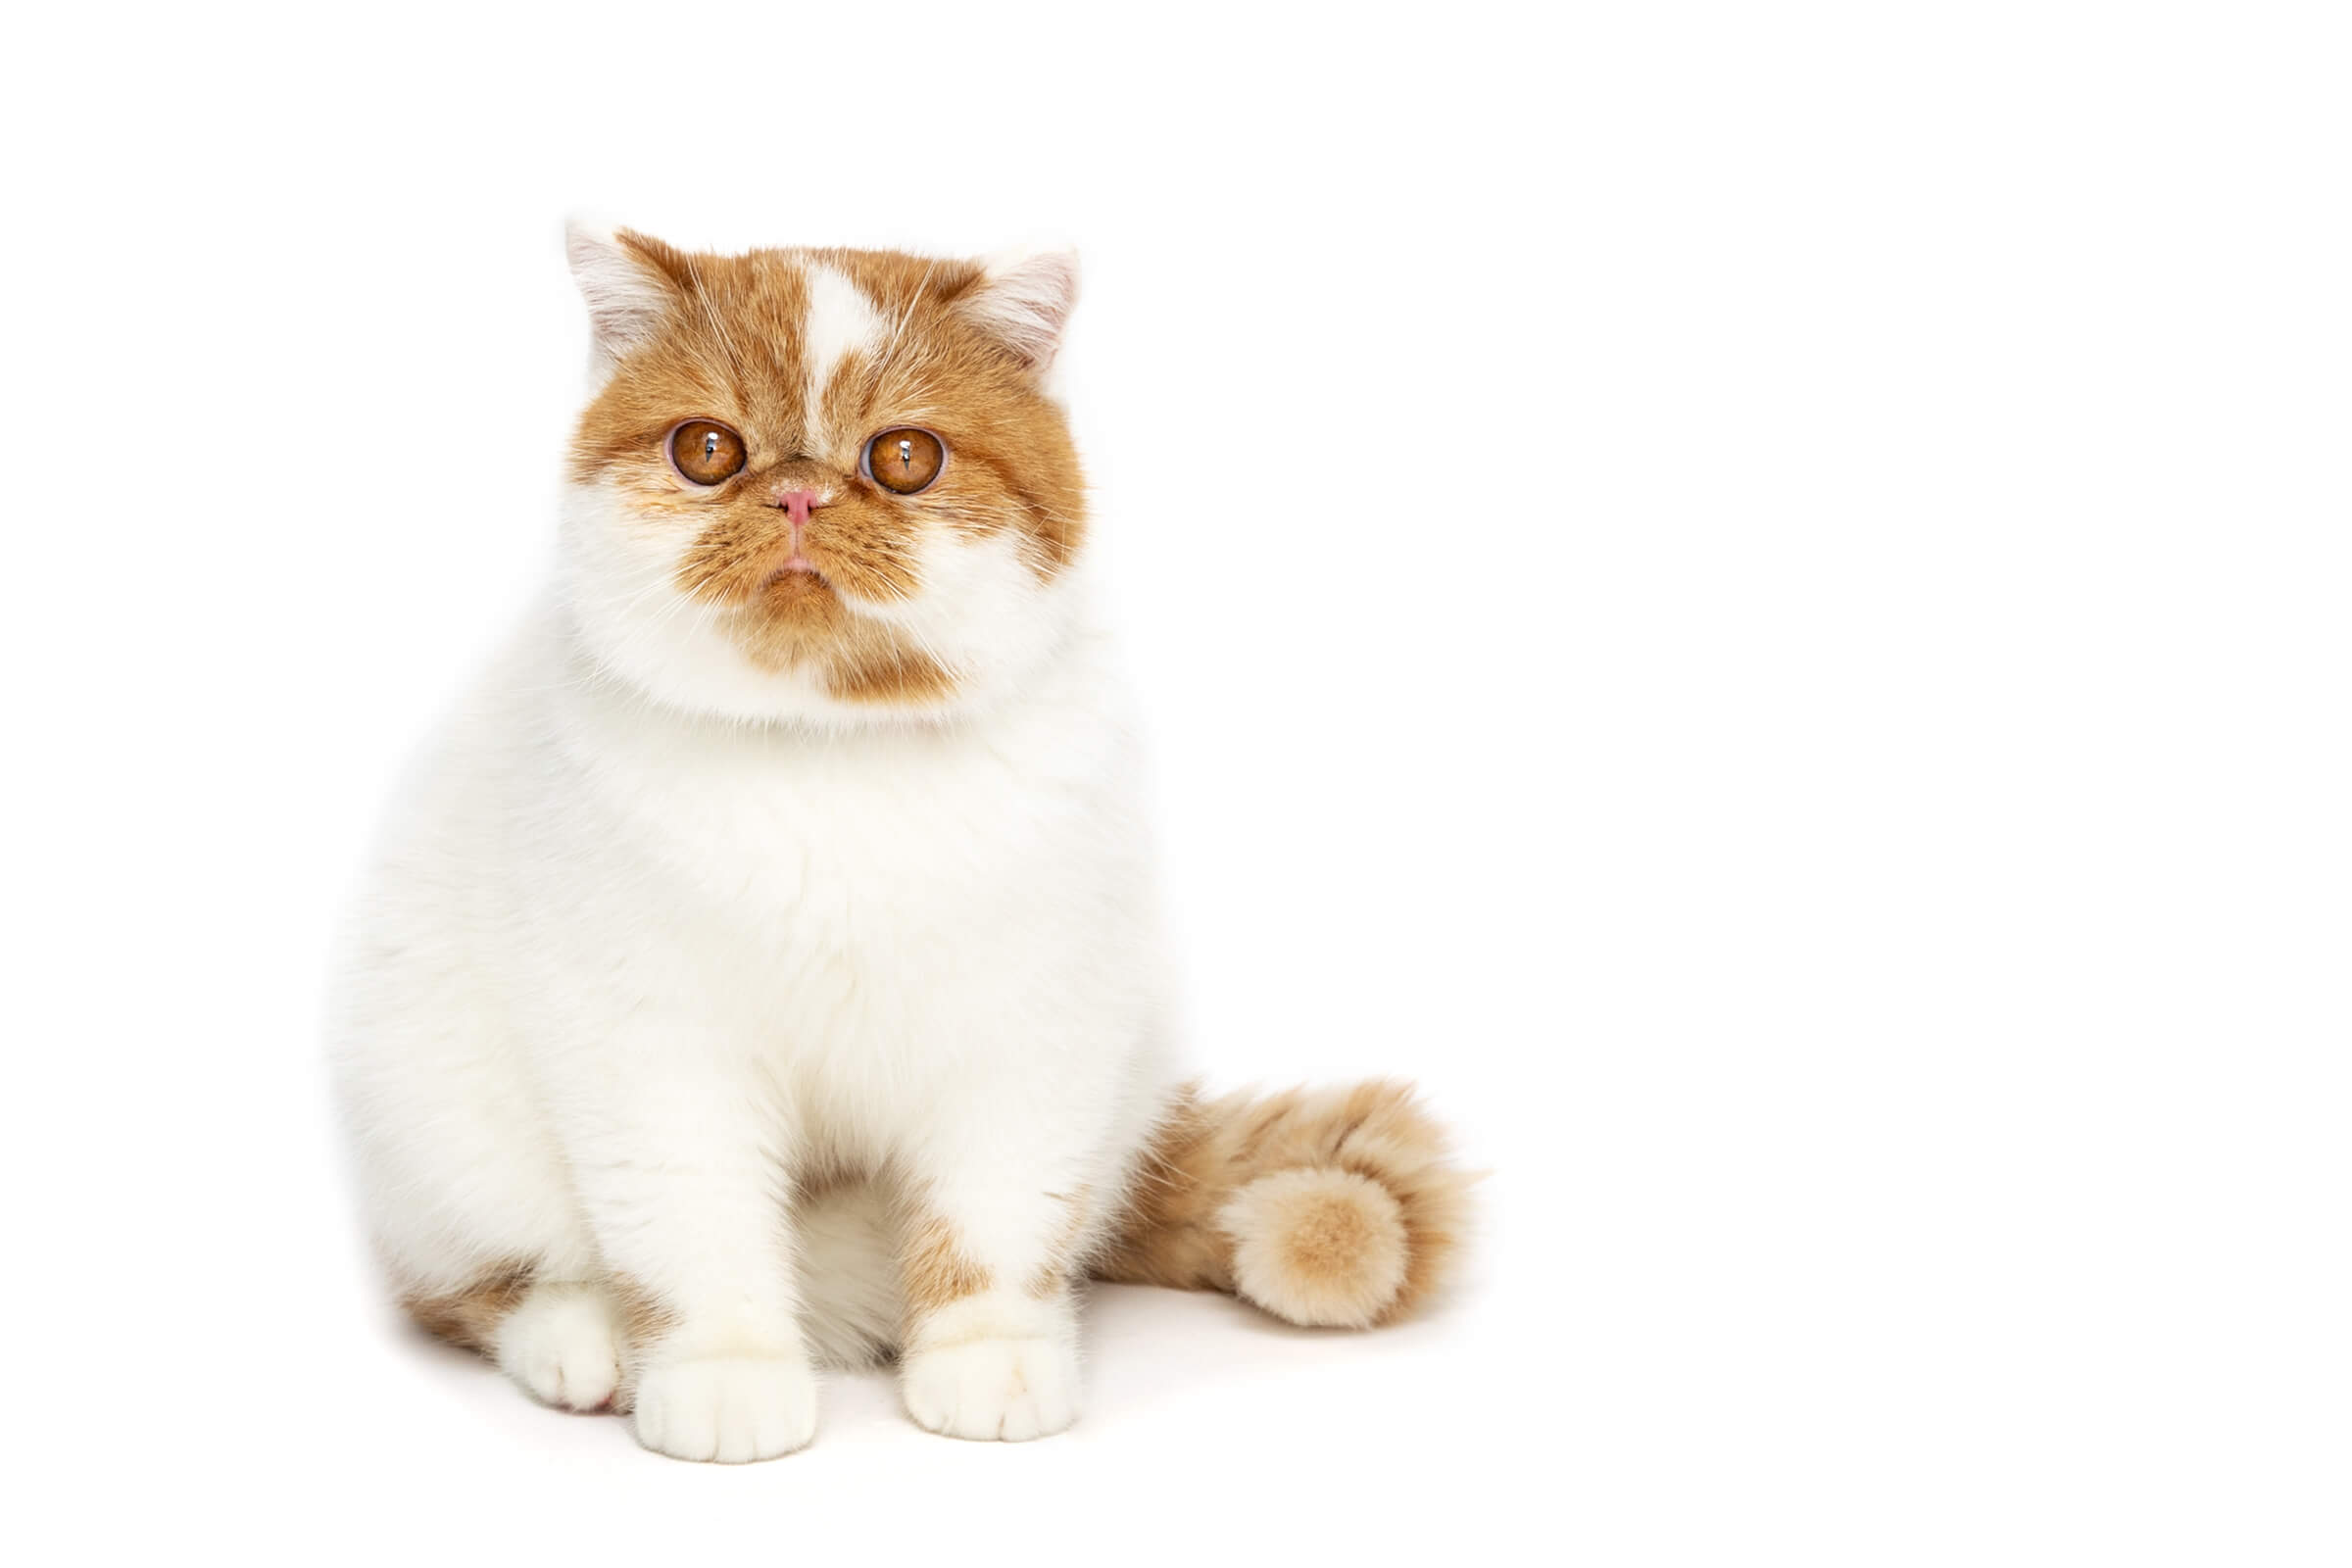 orange and white tabby cat during commercial photo shoot